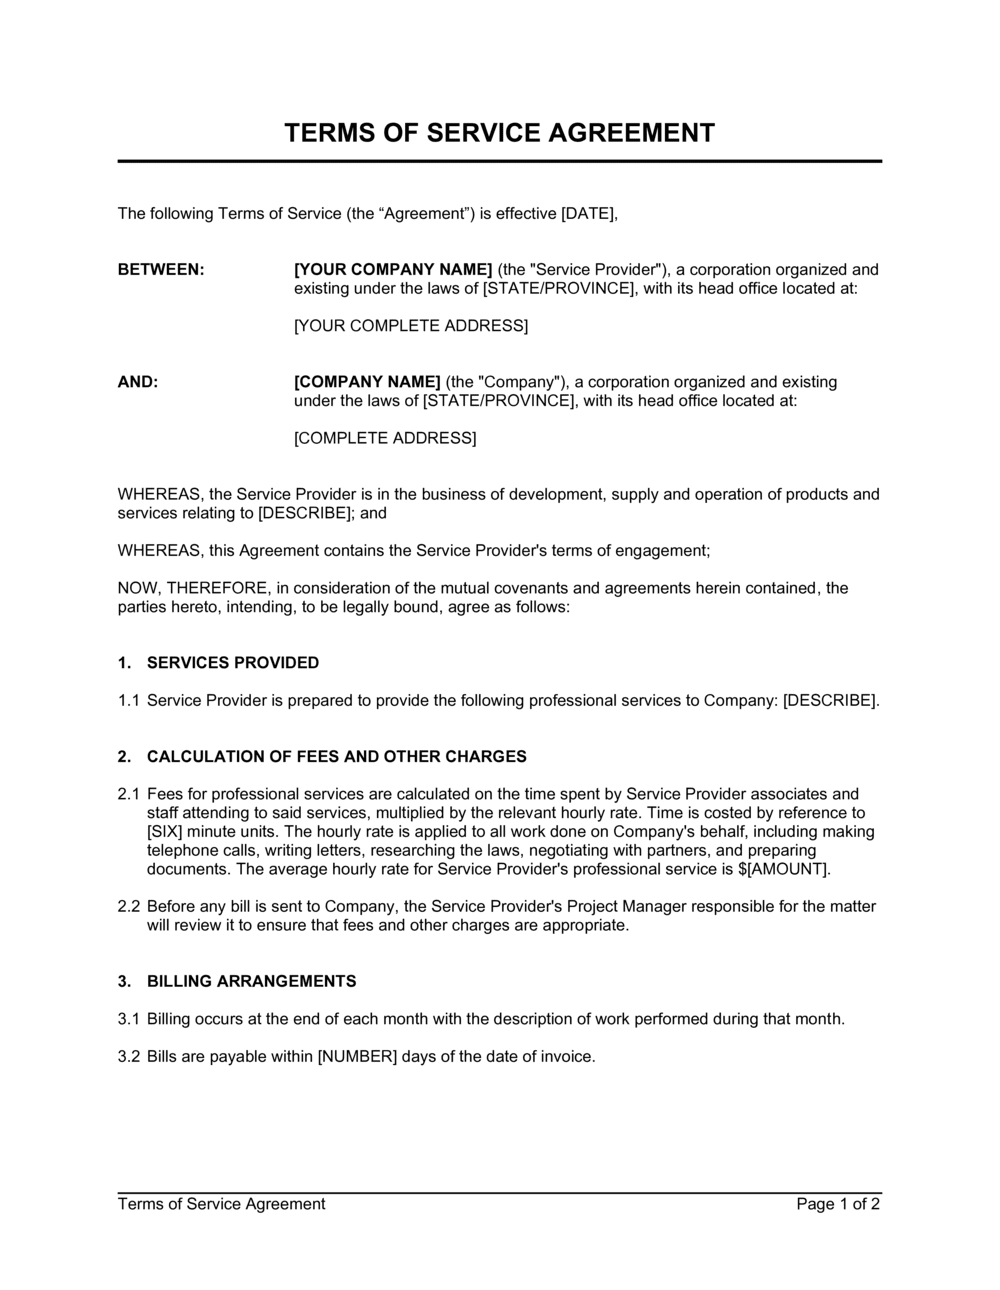 Business-in-a-Box's Terms of Service Agreement Template